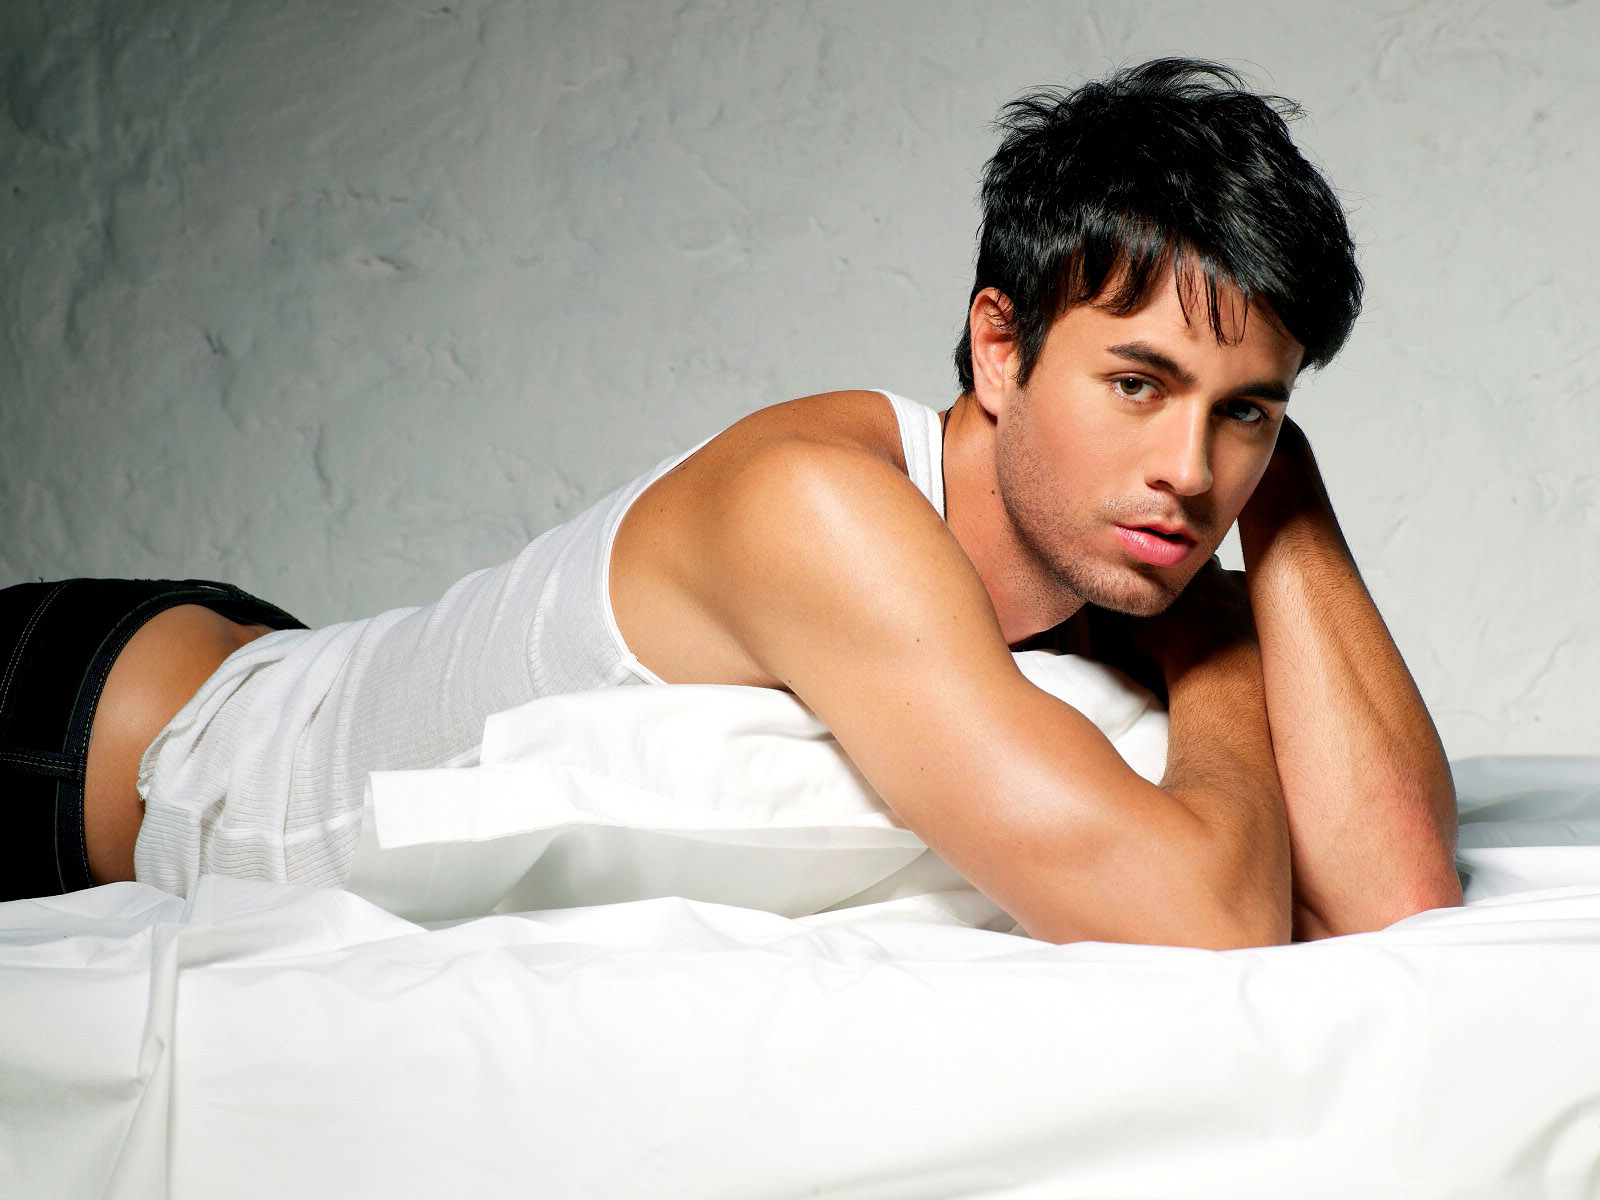 http://4.bp.blogspot.com/-8ei0giP59I0/TuXHHhenHPI/AAAAAAAAAnw/WKZFAw8X2y4/s1600/Enrique-Iglesias-pictures-desktop-Wallpapers-HD-photo-images-15.jpg